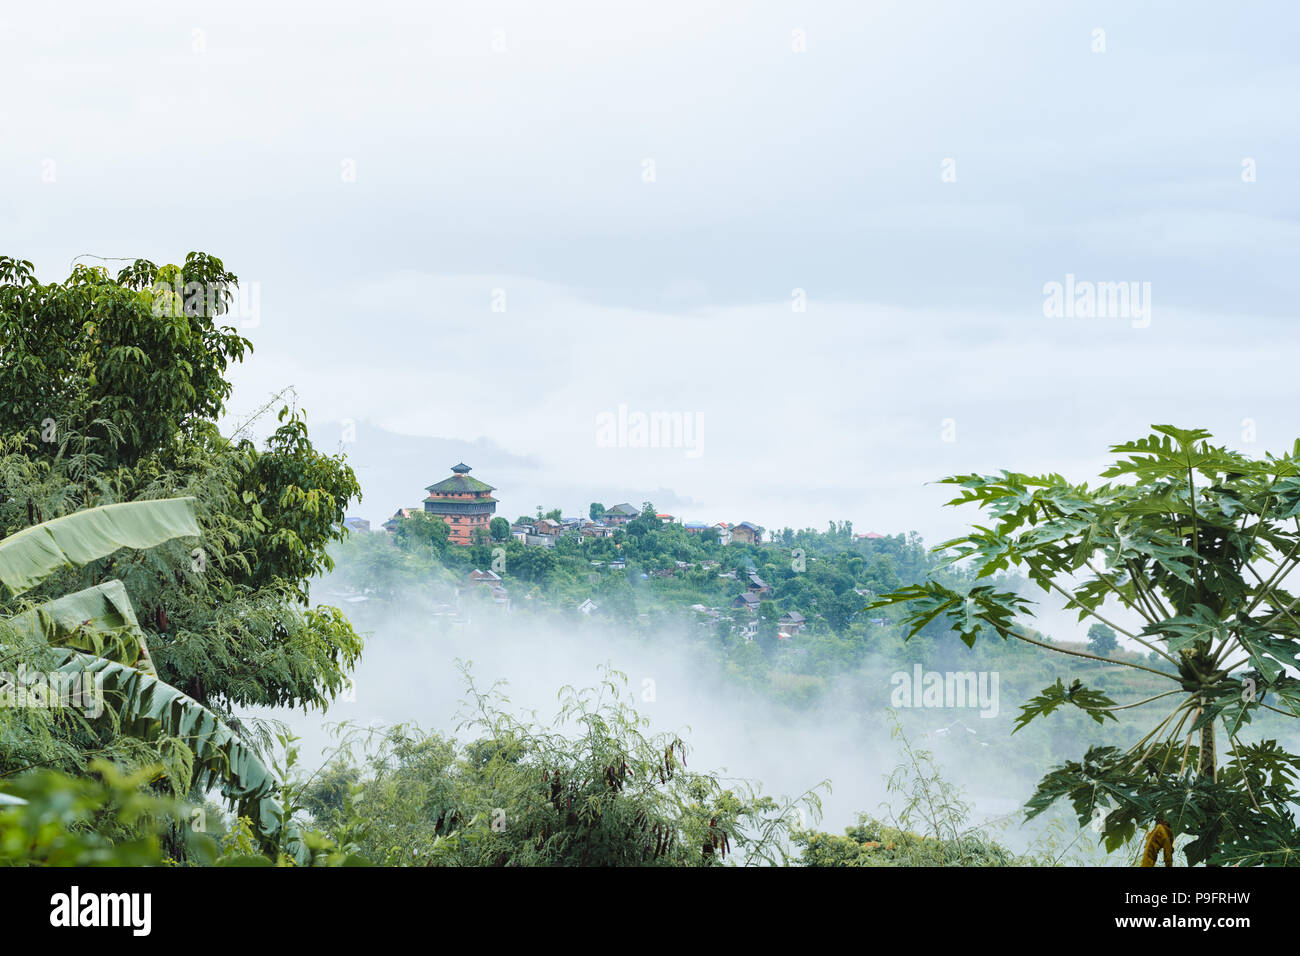 Nuwakot ancient castle tower appears in the morning haze from a hilltop near Nuwakot village, Nepal. - Stock Image